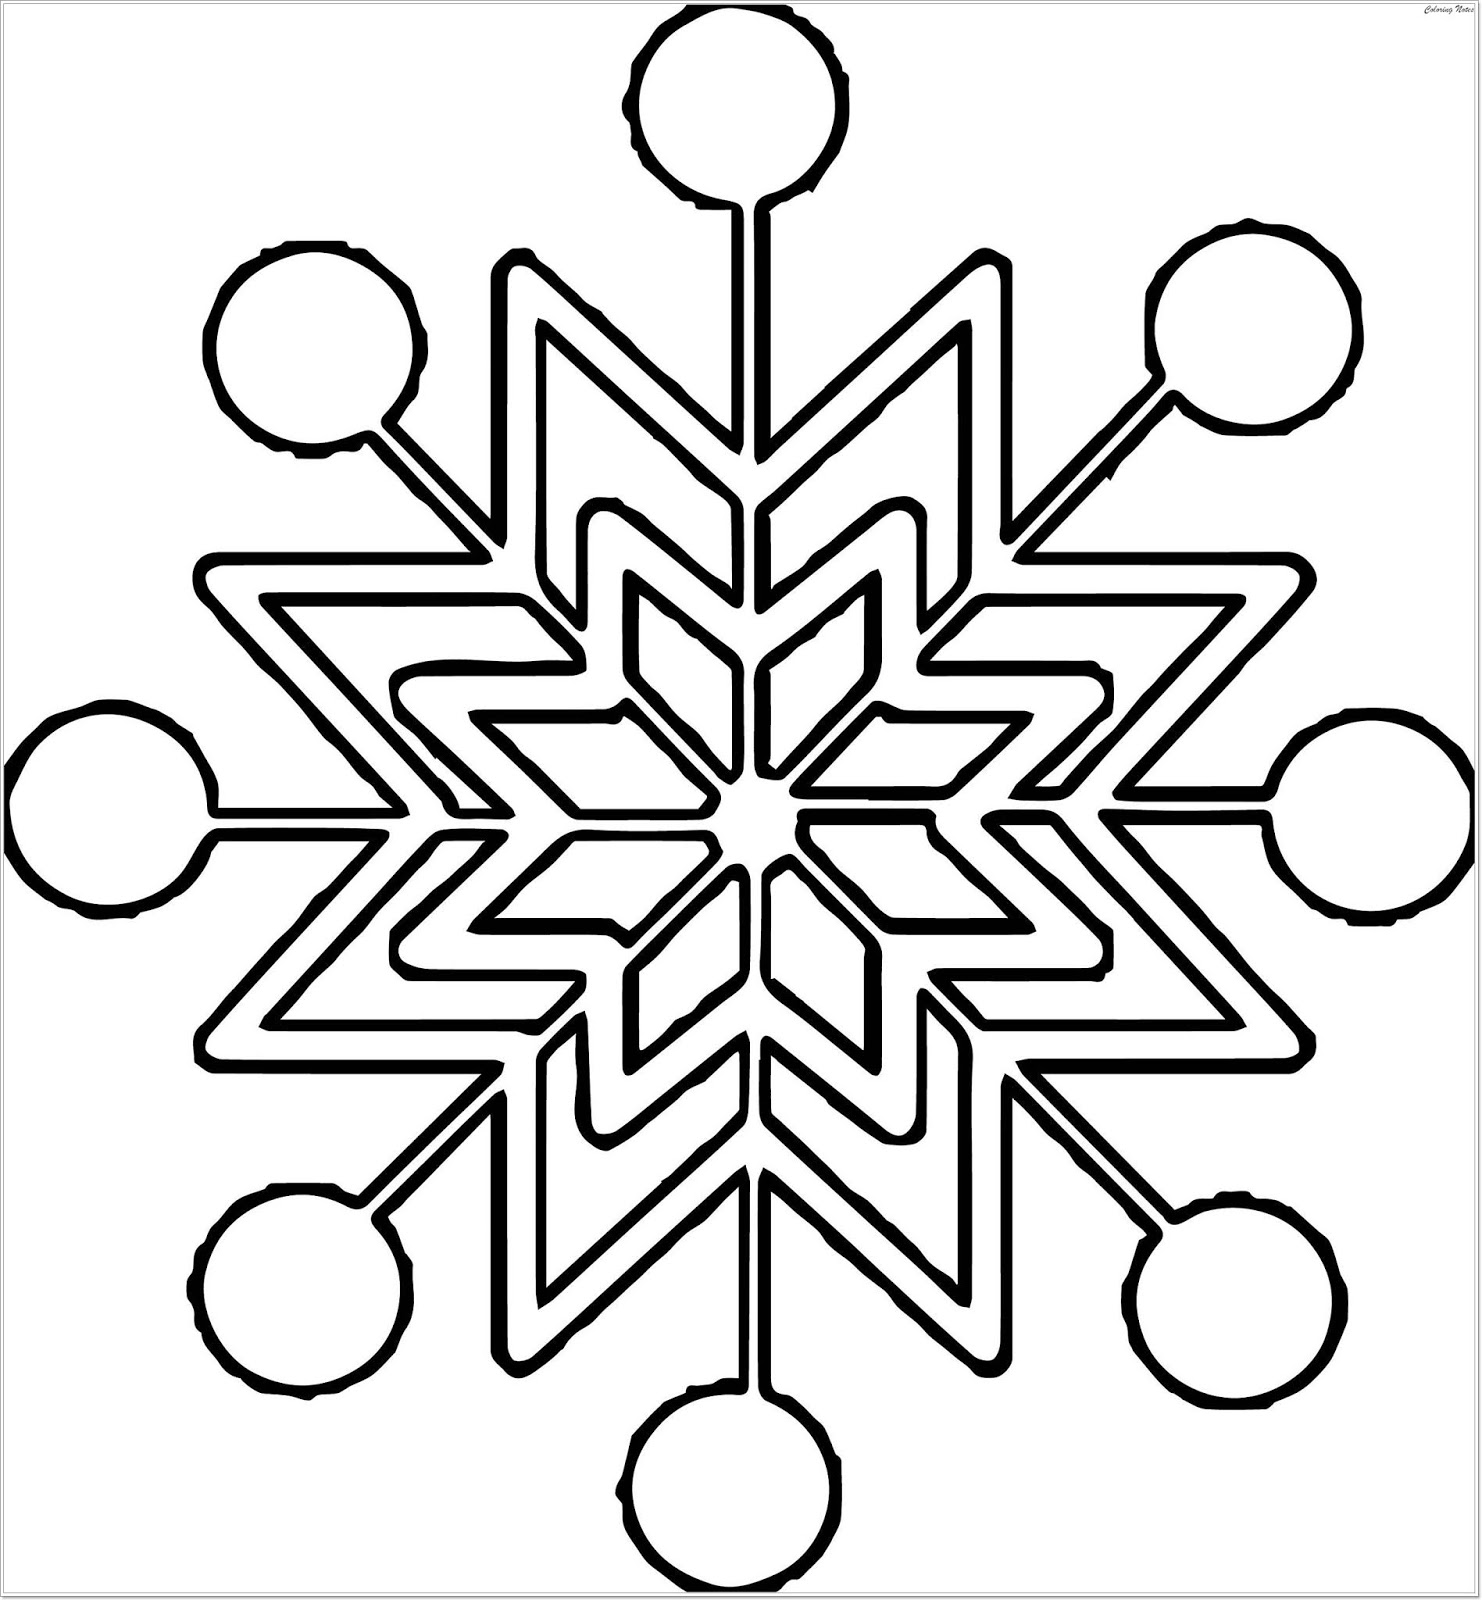 snowflakes coloring page free printable snowflake coloring pages for kids snowflakes coloring page 1 1